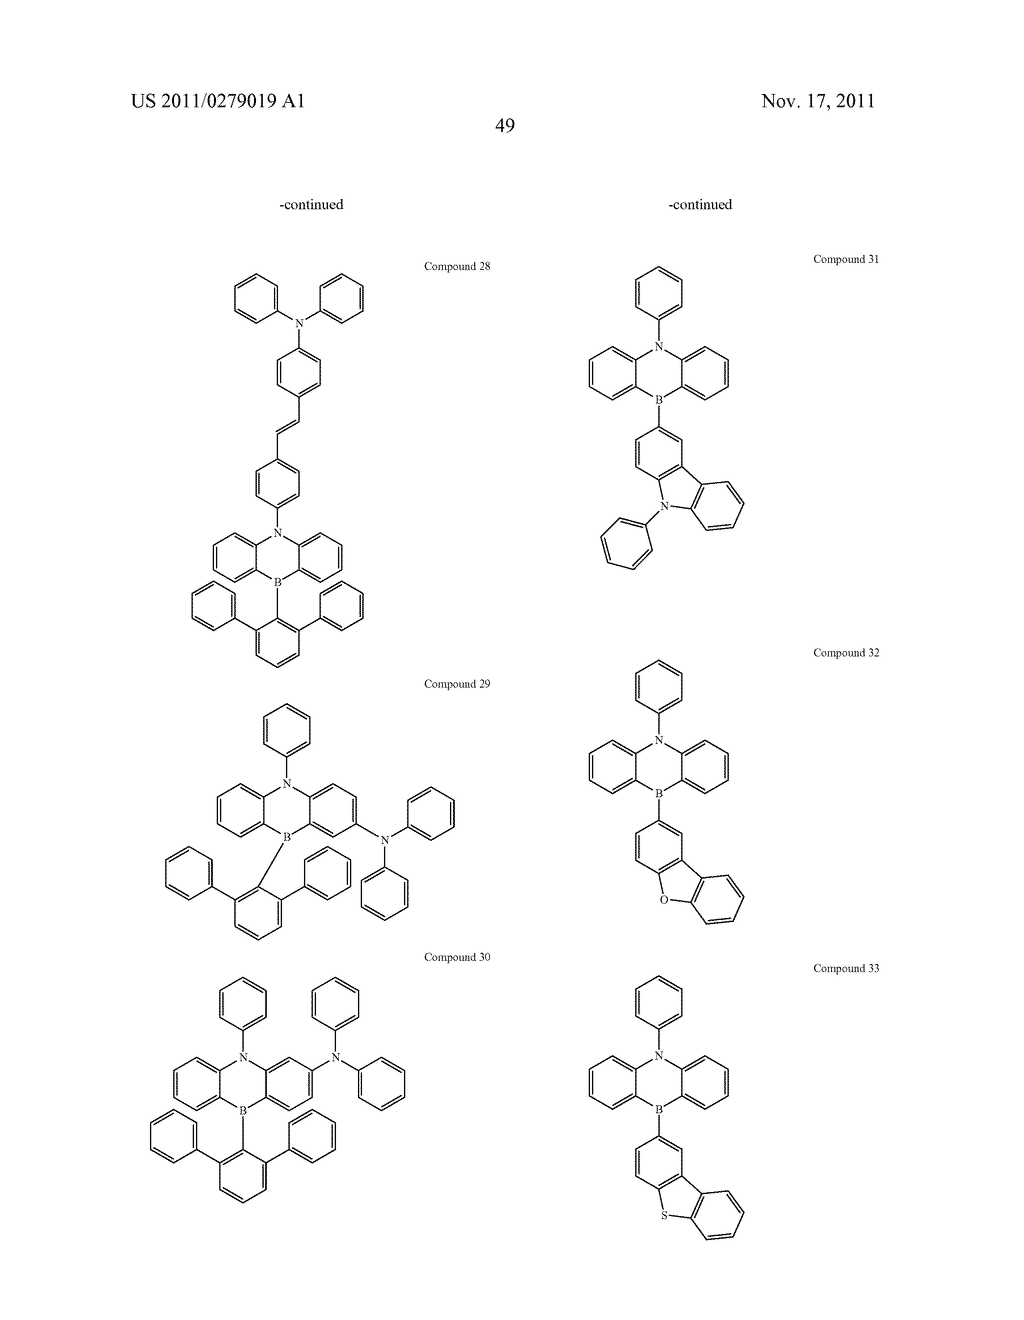 AZABORININE COMPOUNDS AS HOST MATERIALS AND DOPANTS FOR PHOLEDS - diagram, schematic, and image 56